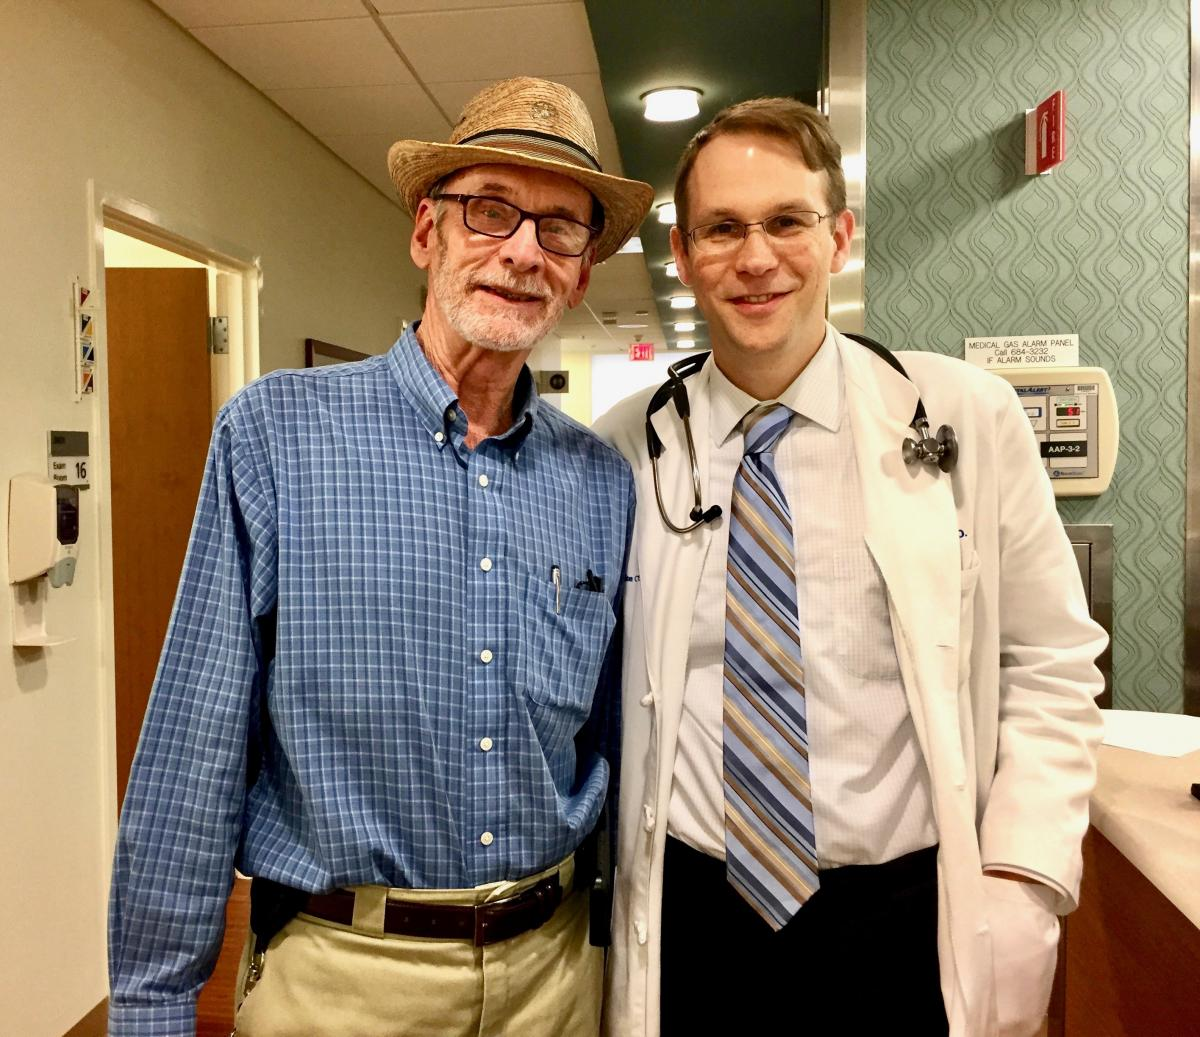 Patient With Rare Pancreas Cancer Beats The Odds | Duke